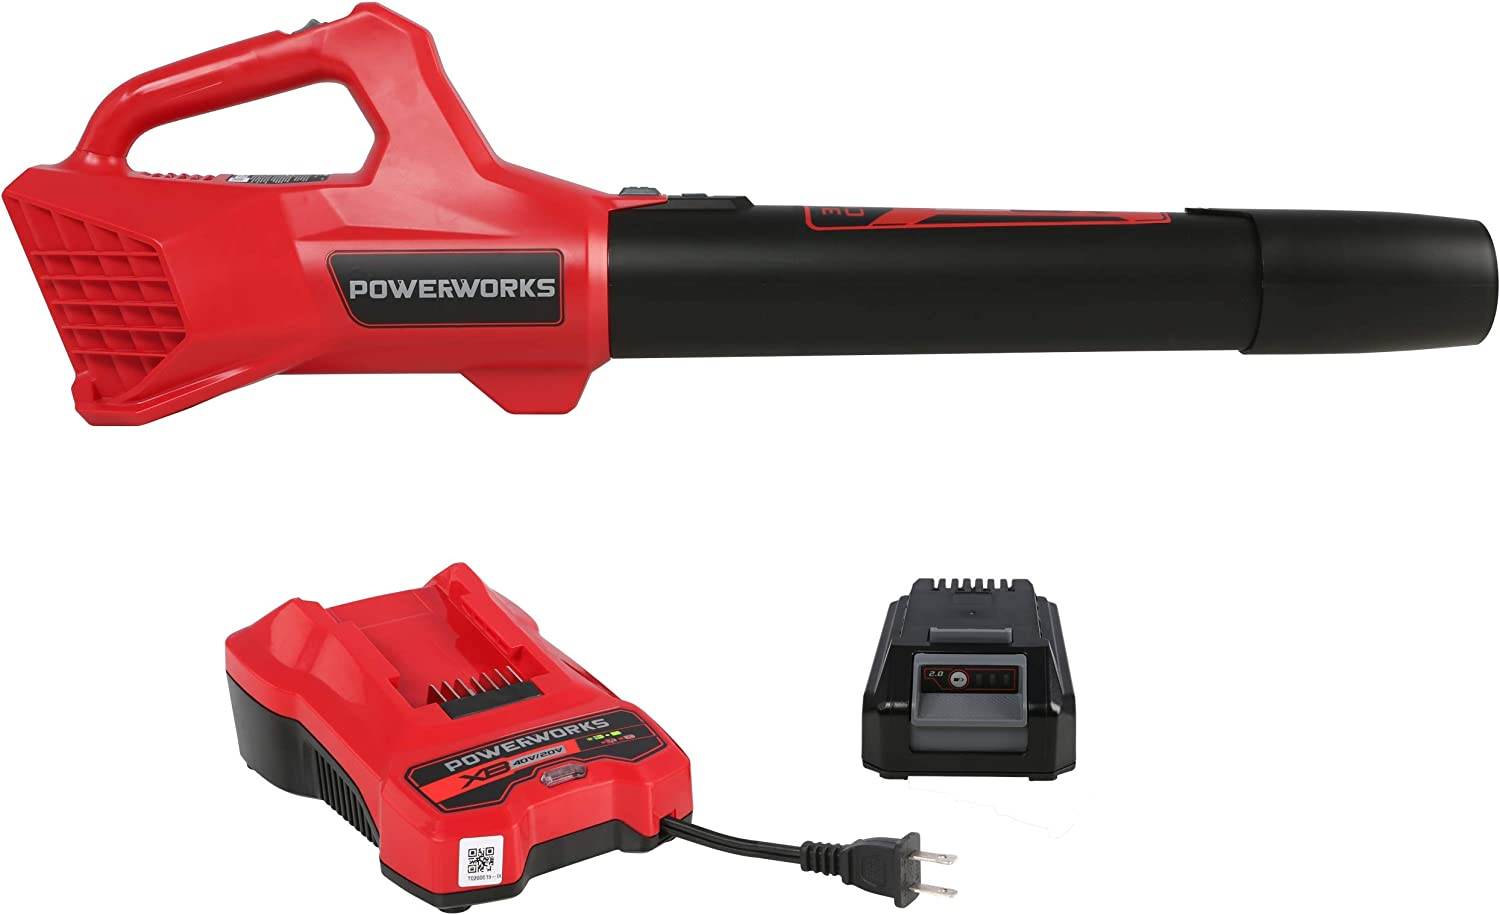 POWERWORKS XB 20VCordless Axial Leaf Blower, 85 MPH 310 CFM, 2Ah Battery and Charger Included BLP301